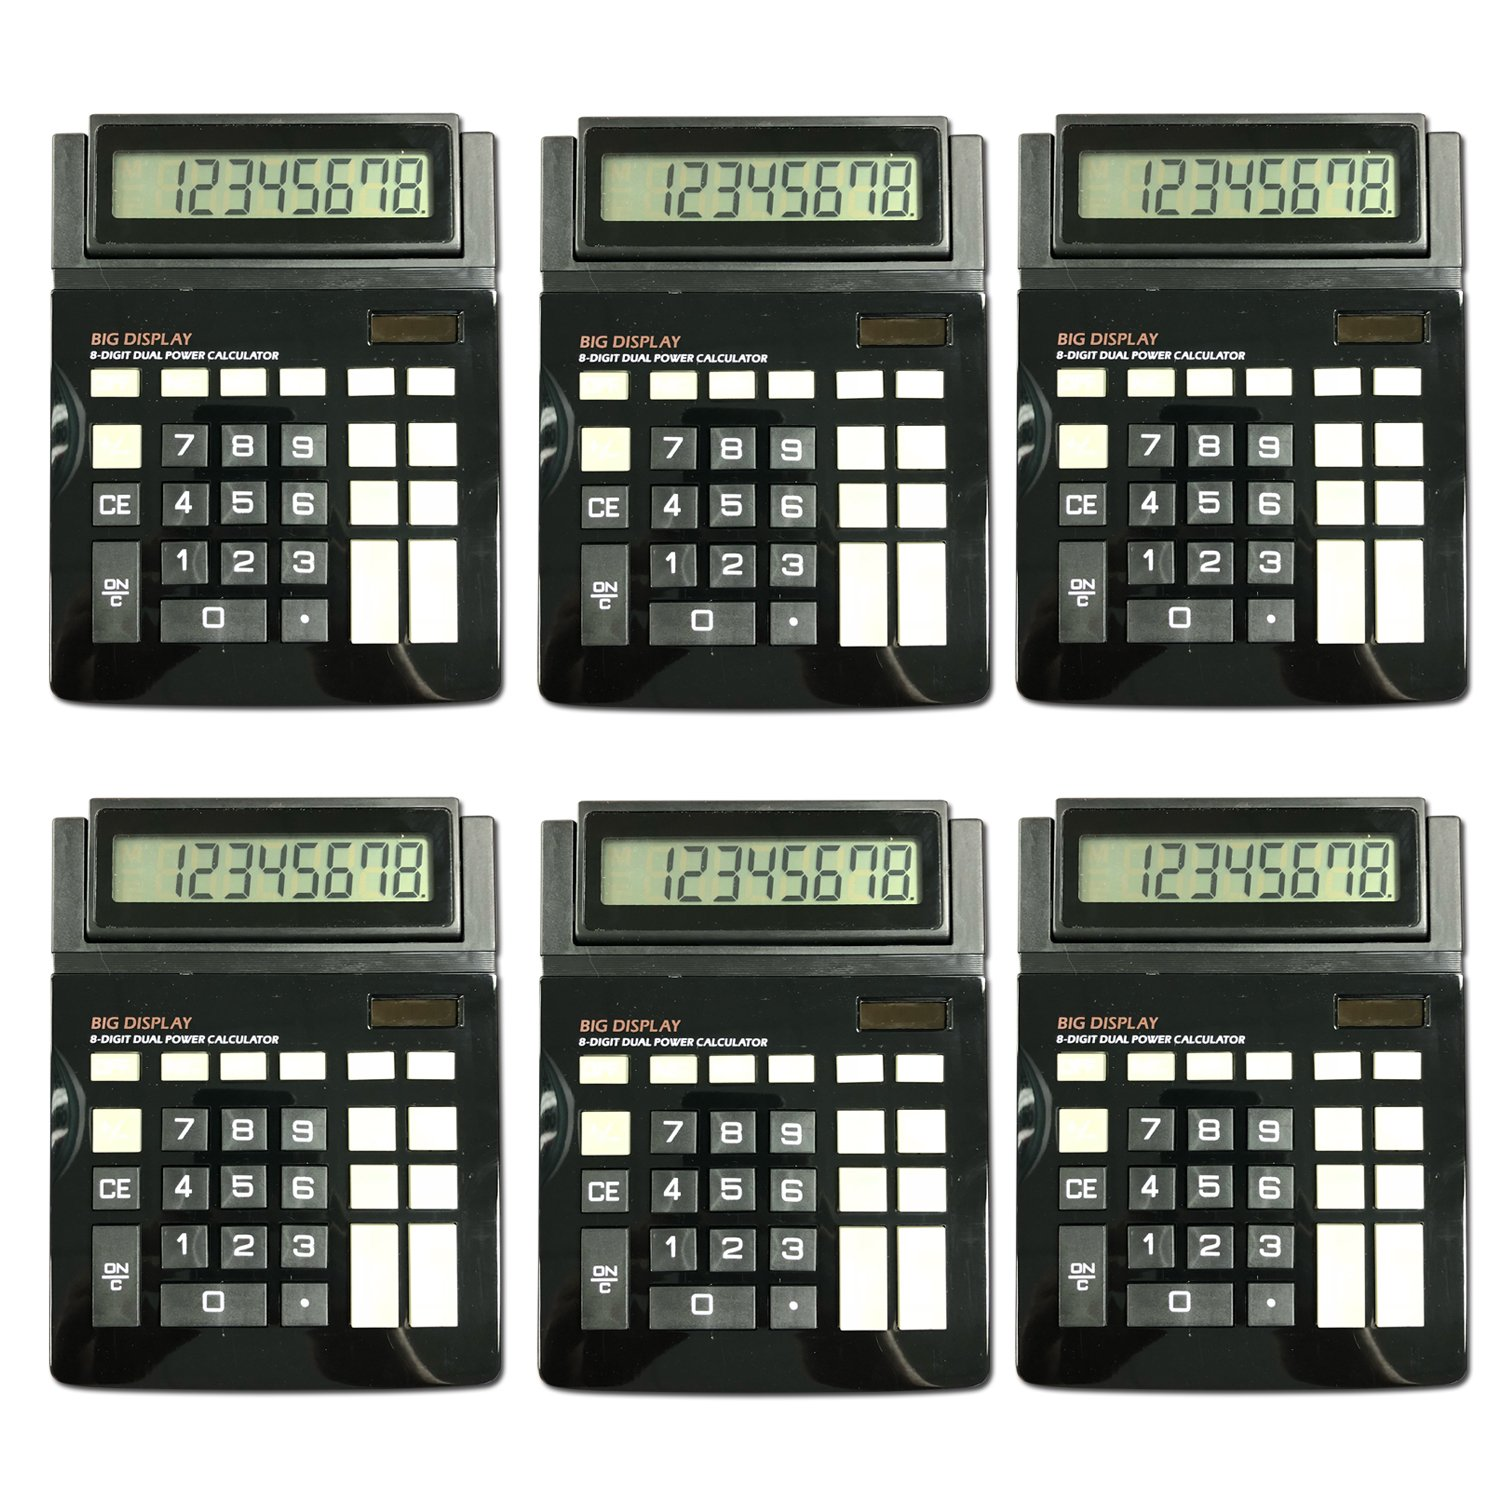 Dual Power Large Display Standard Function Desktop Basic Calculator Bulk Value 6 Pack Assortit